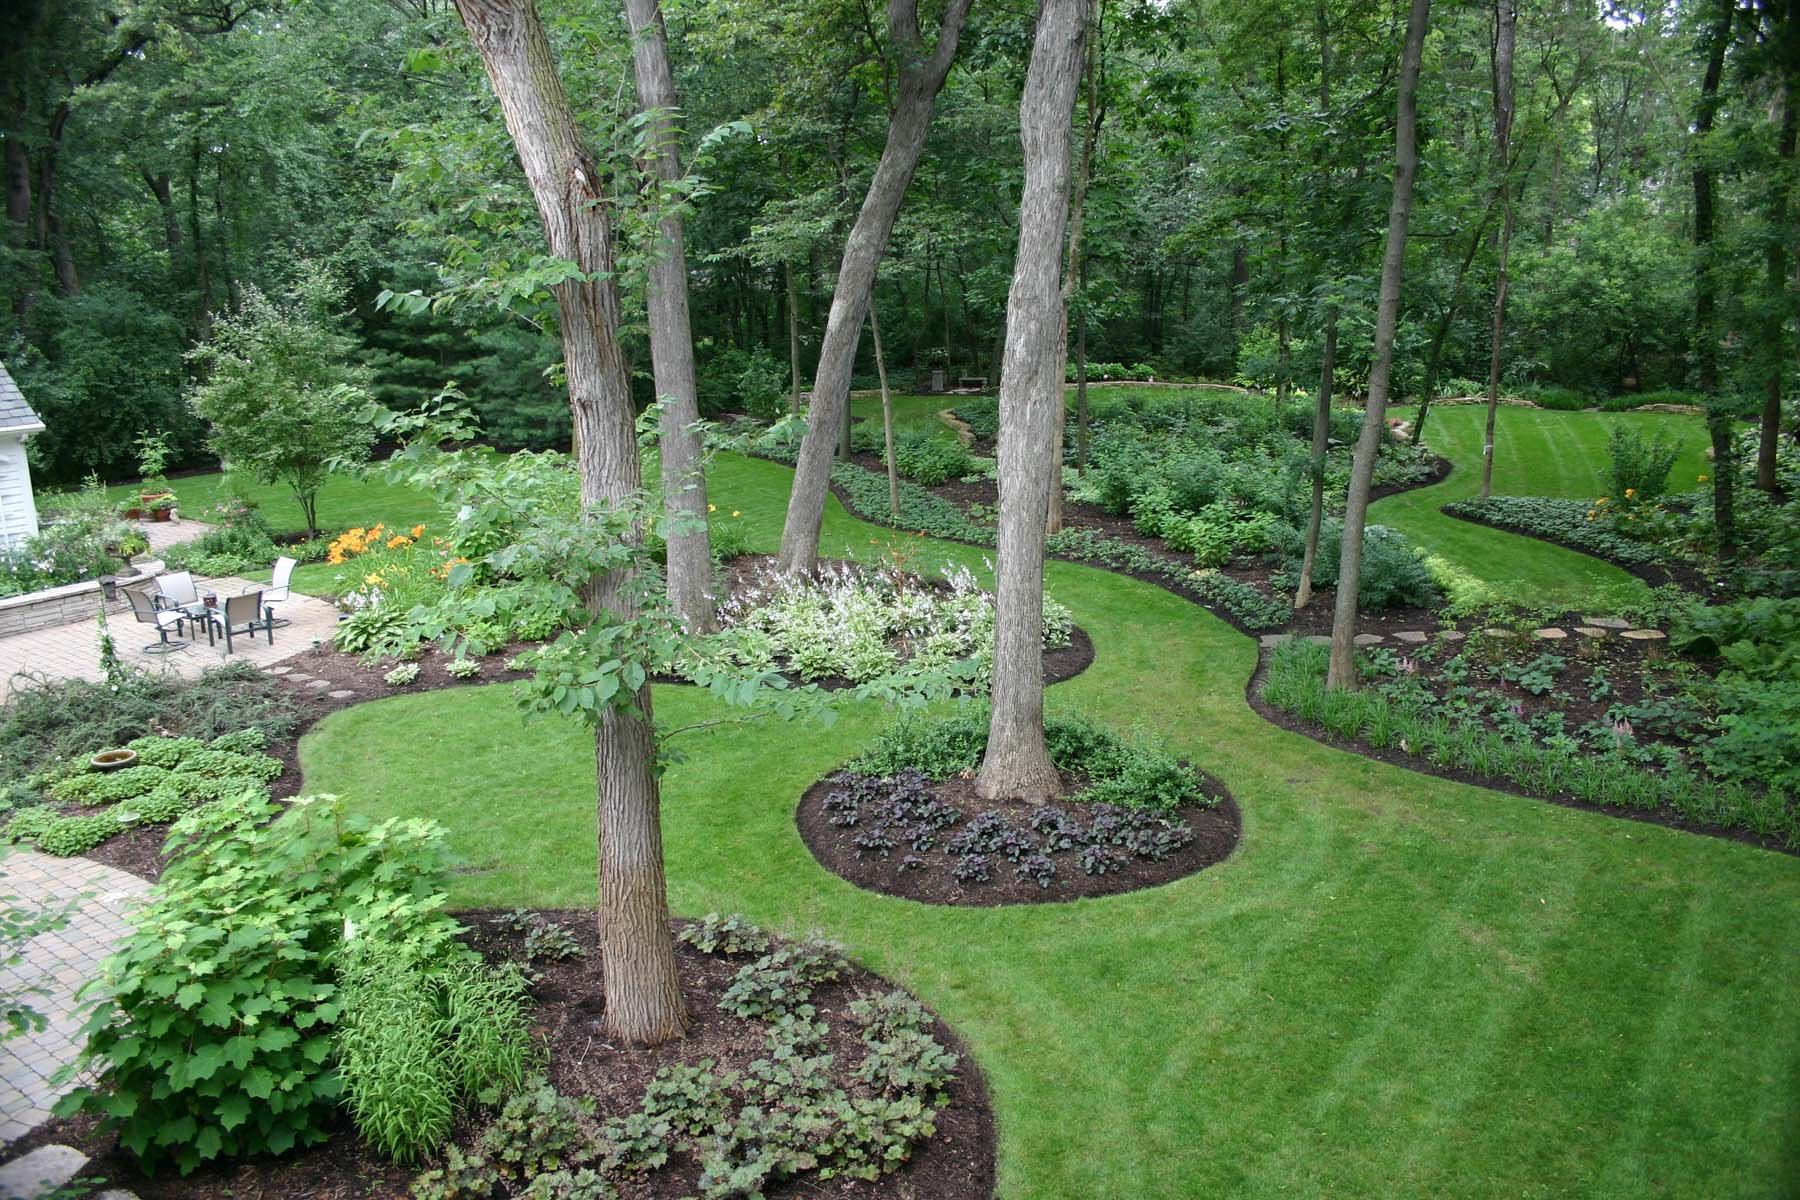 Backyard Landscapes intended for 11 Awesome Designs of How to Craft Backyard Landscapes